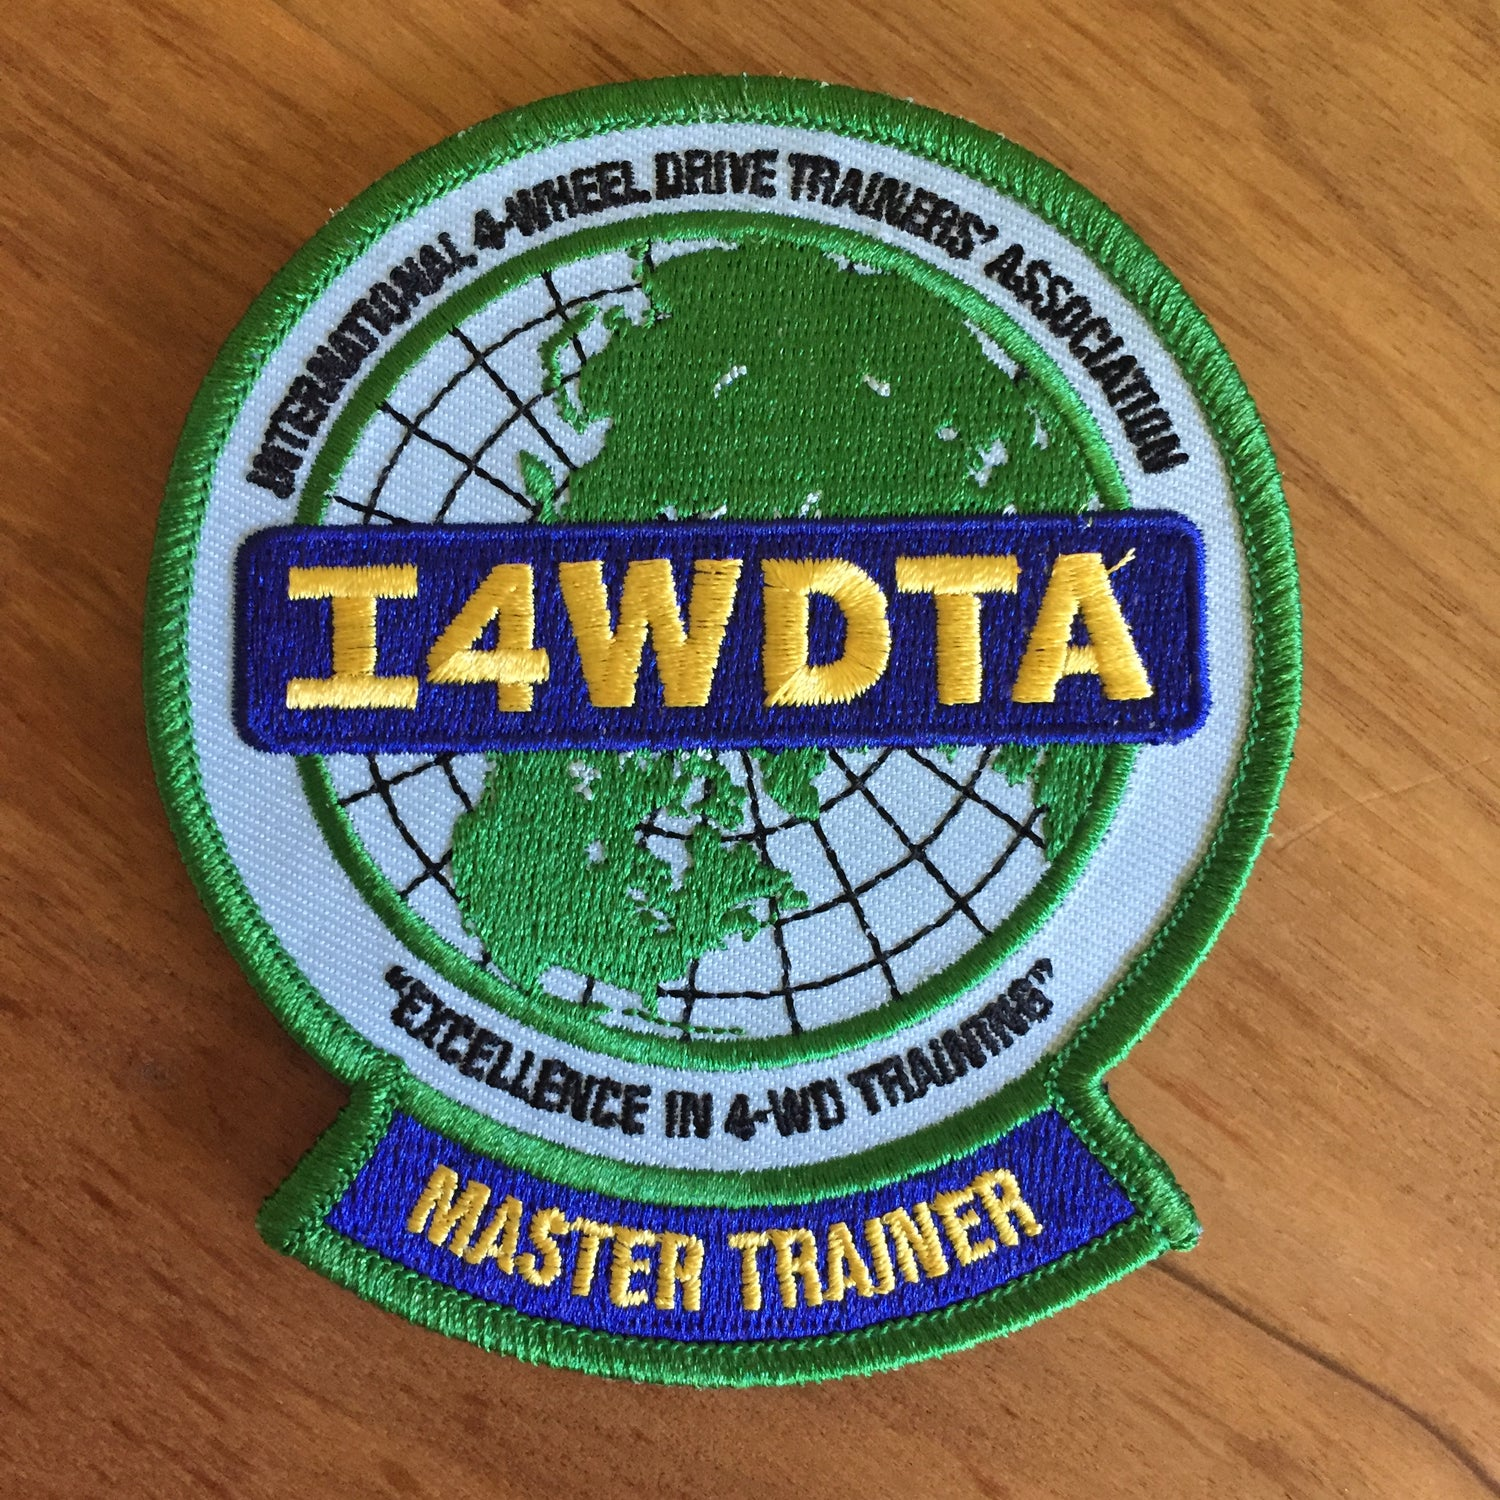 Image of I4WDTA MASTER TRAINER Embroidered Patch